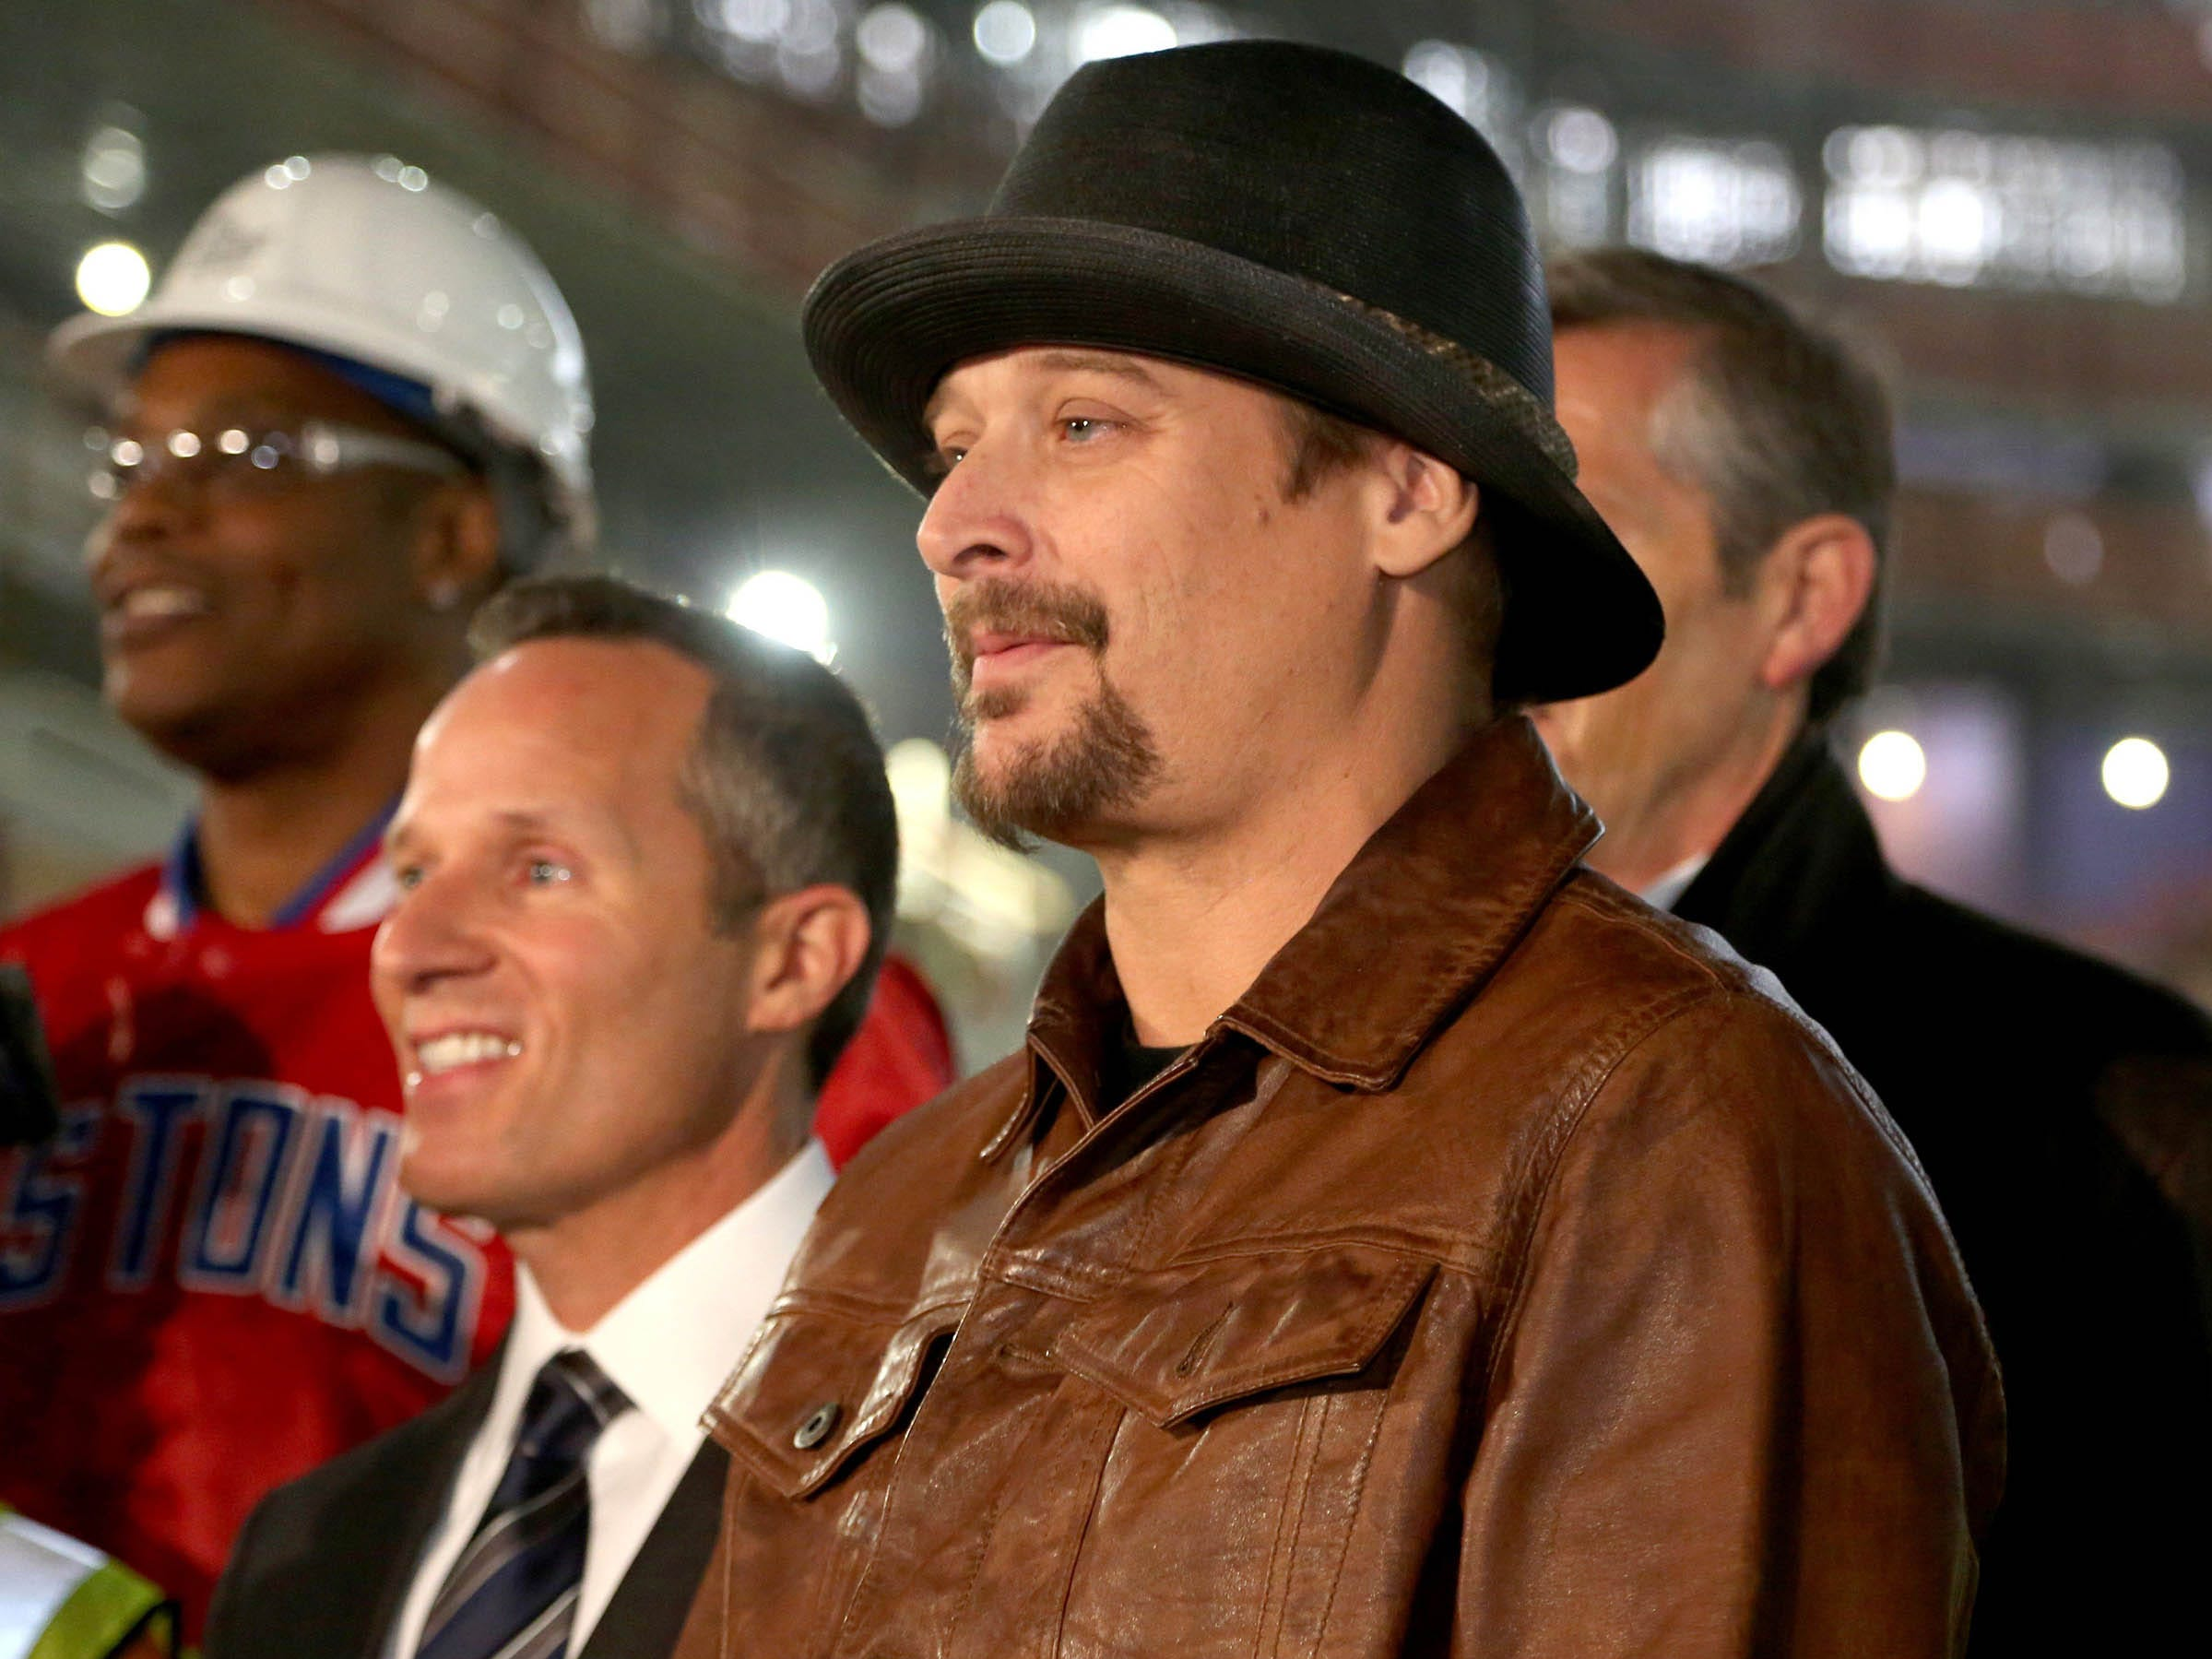 Kid Rock poses for a group picture with other dignitaries and construction workers after a press conference was held inside the Little Caesars Arena in Detroit in January 2017.